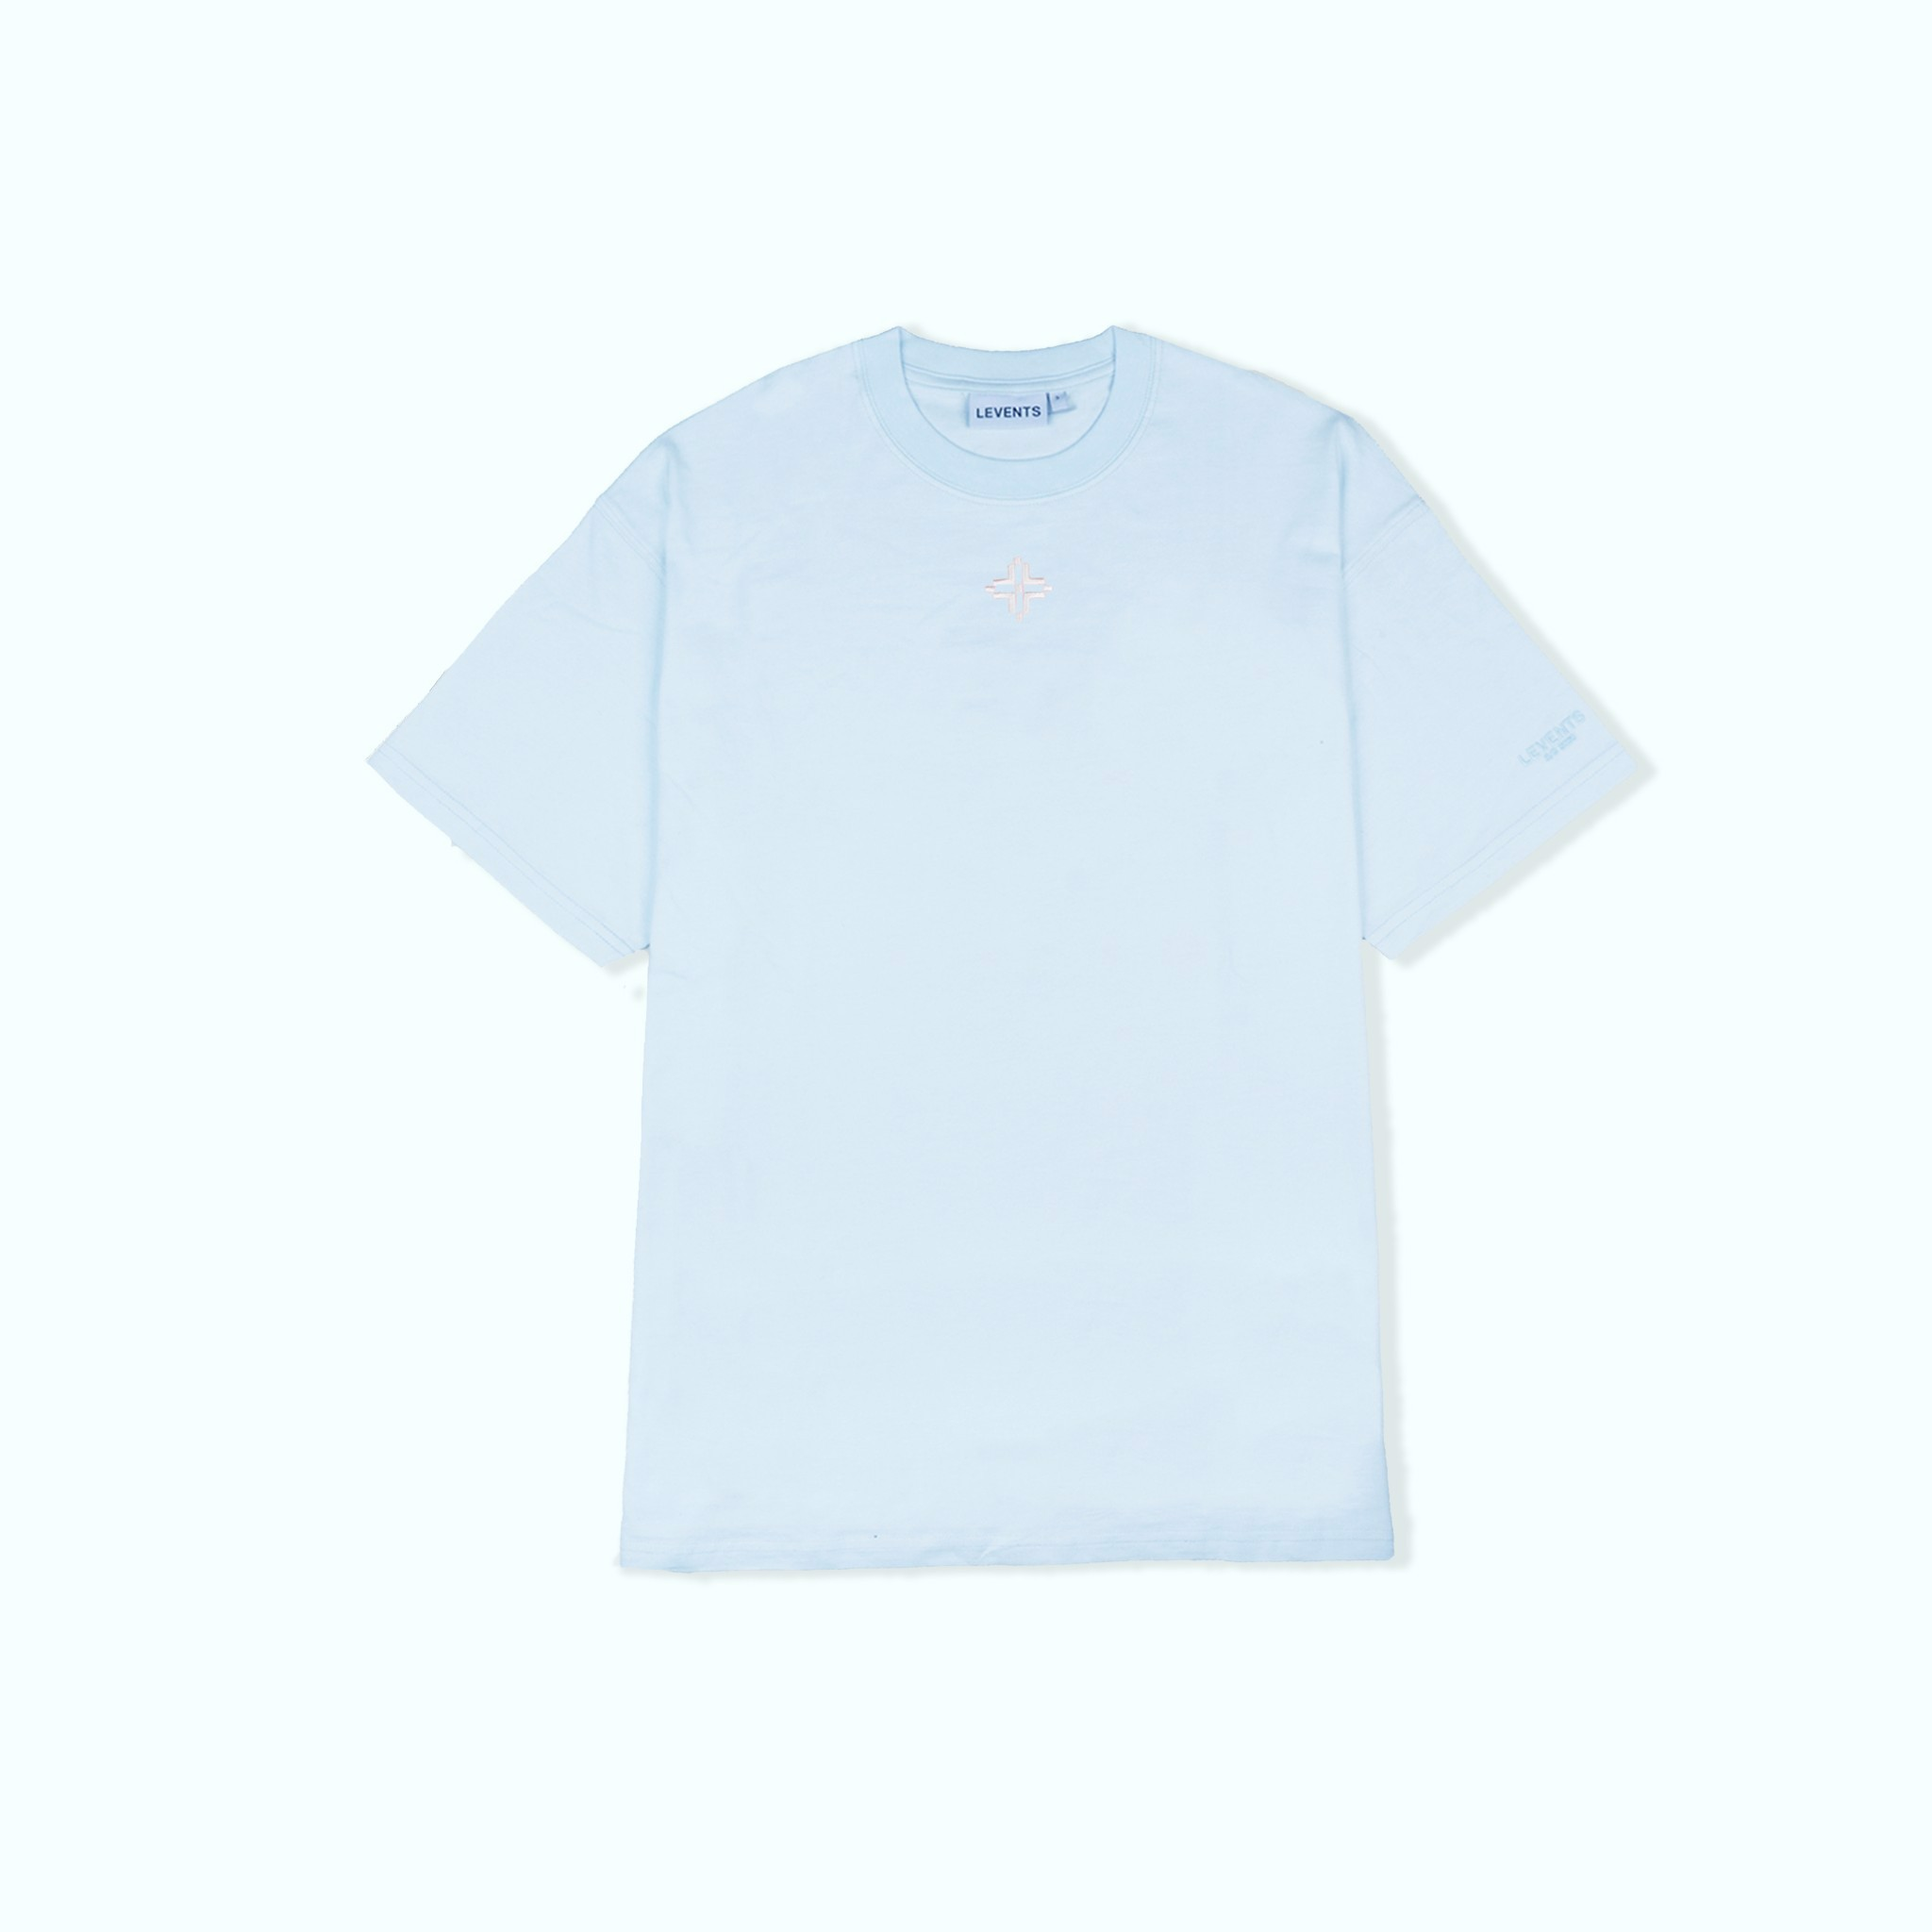 +LVS XL LOGO TEE SHIRT BABY BLUE +WHITE